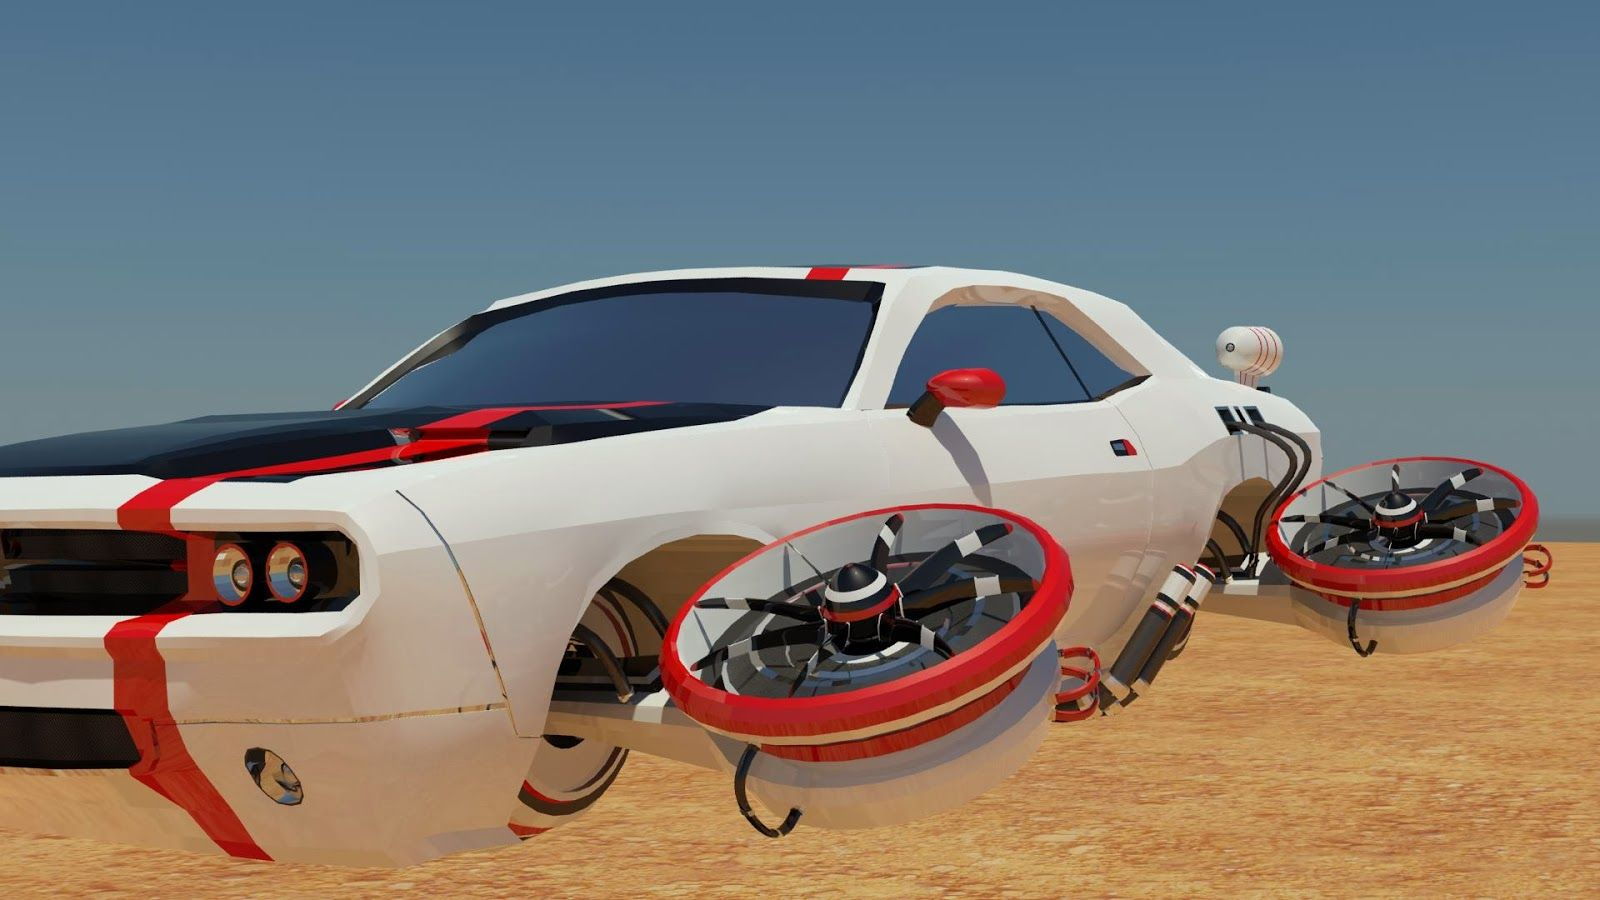 retro futuristic vehicles Google Search Flying car